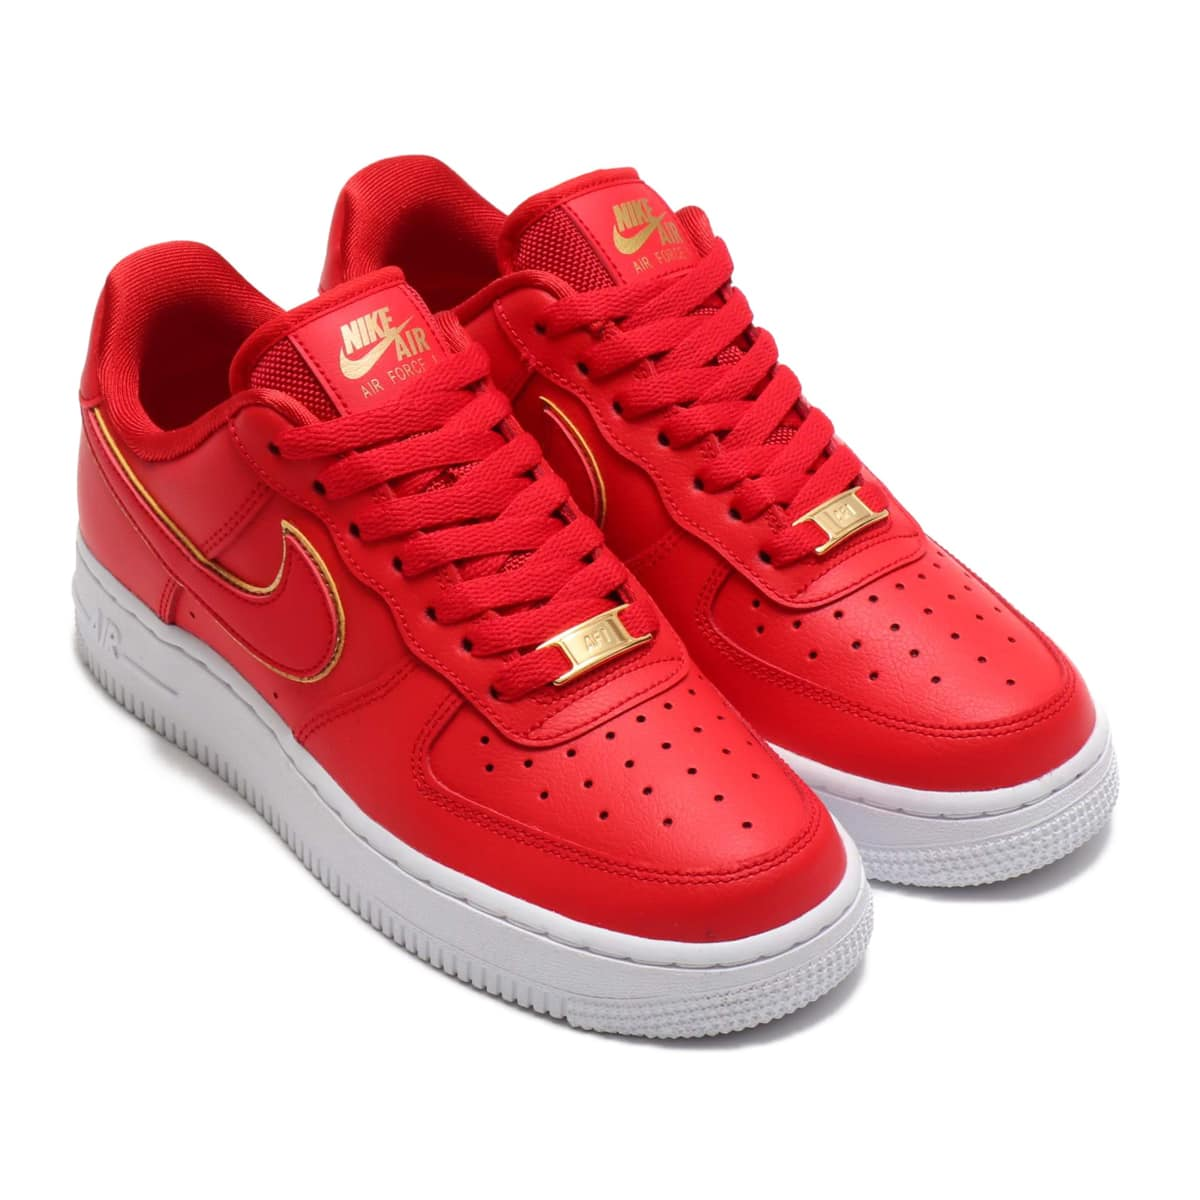 NIKE WMNS AIR FORCE 1 '07 ESS UNIVERSITY RED/UNIVERSITY RED-WHITE 19HO-S_photo_large